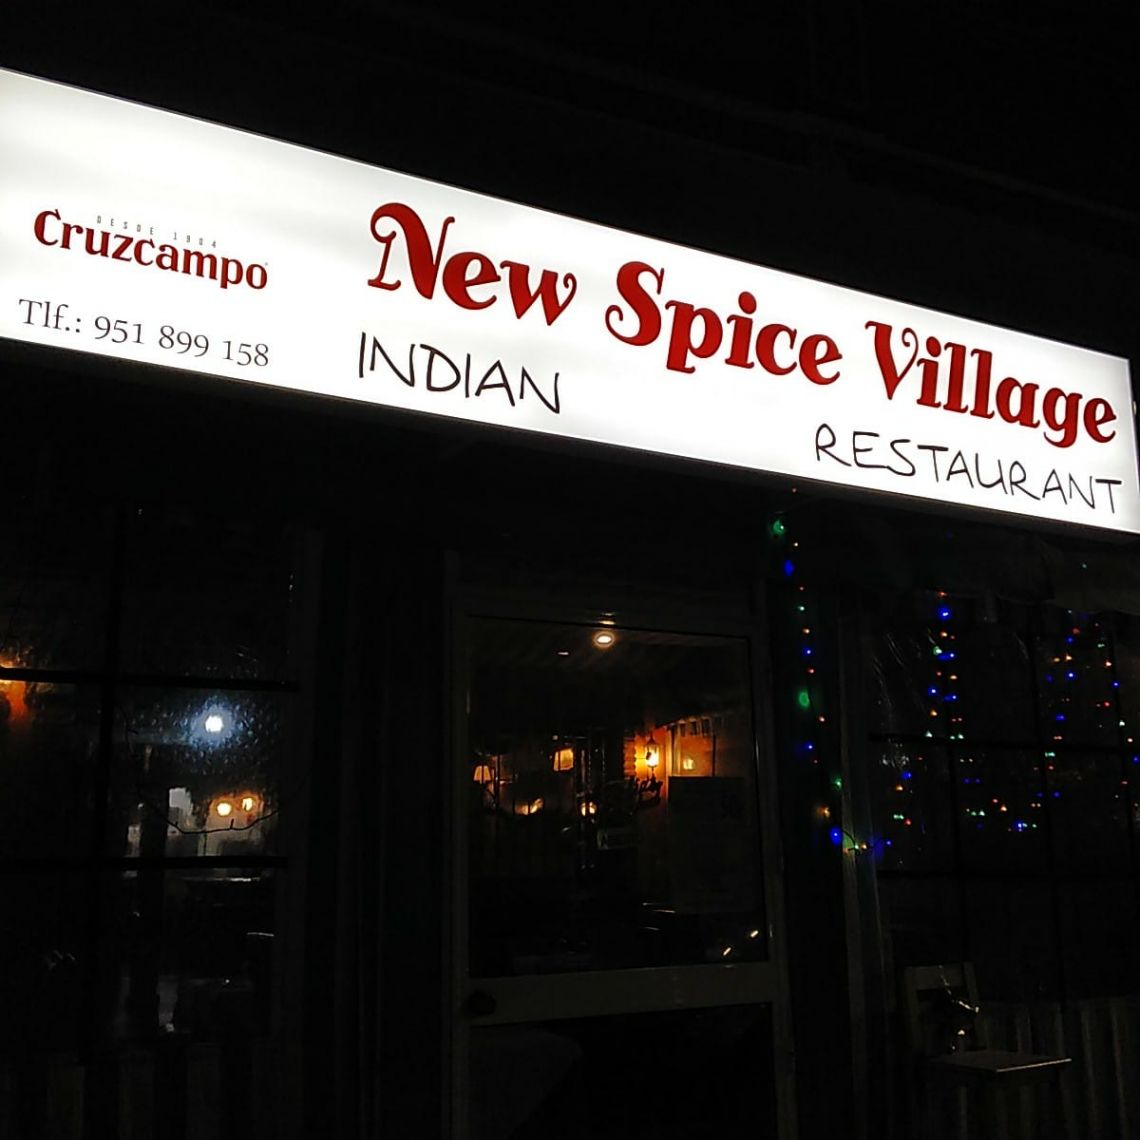 New Spice Village